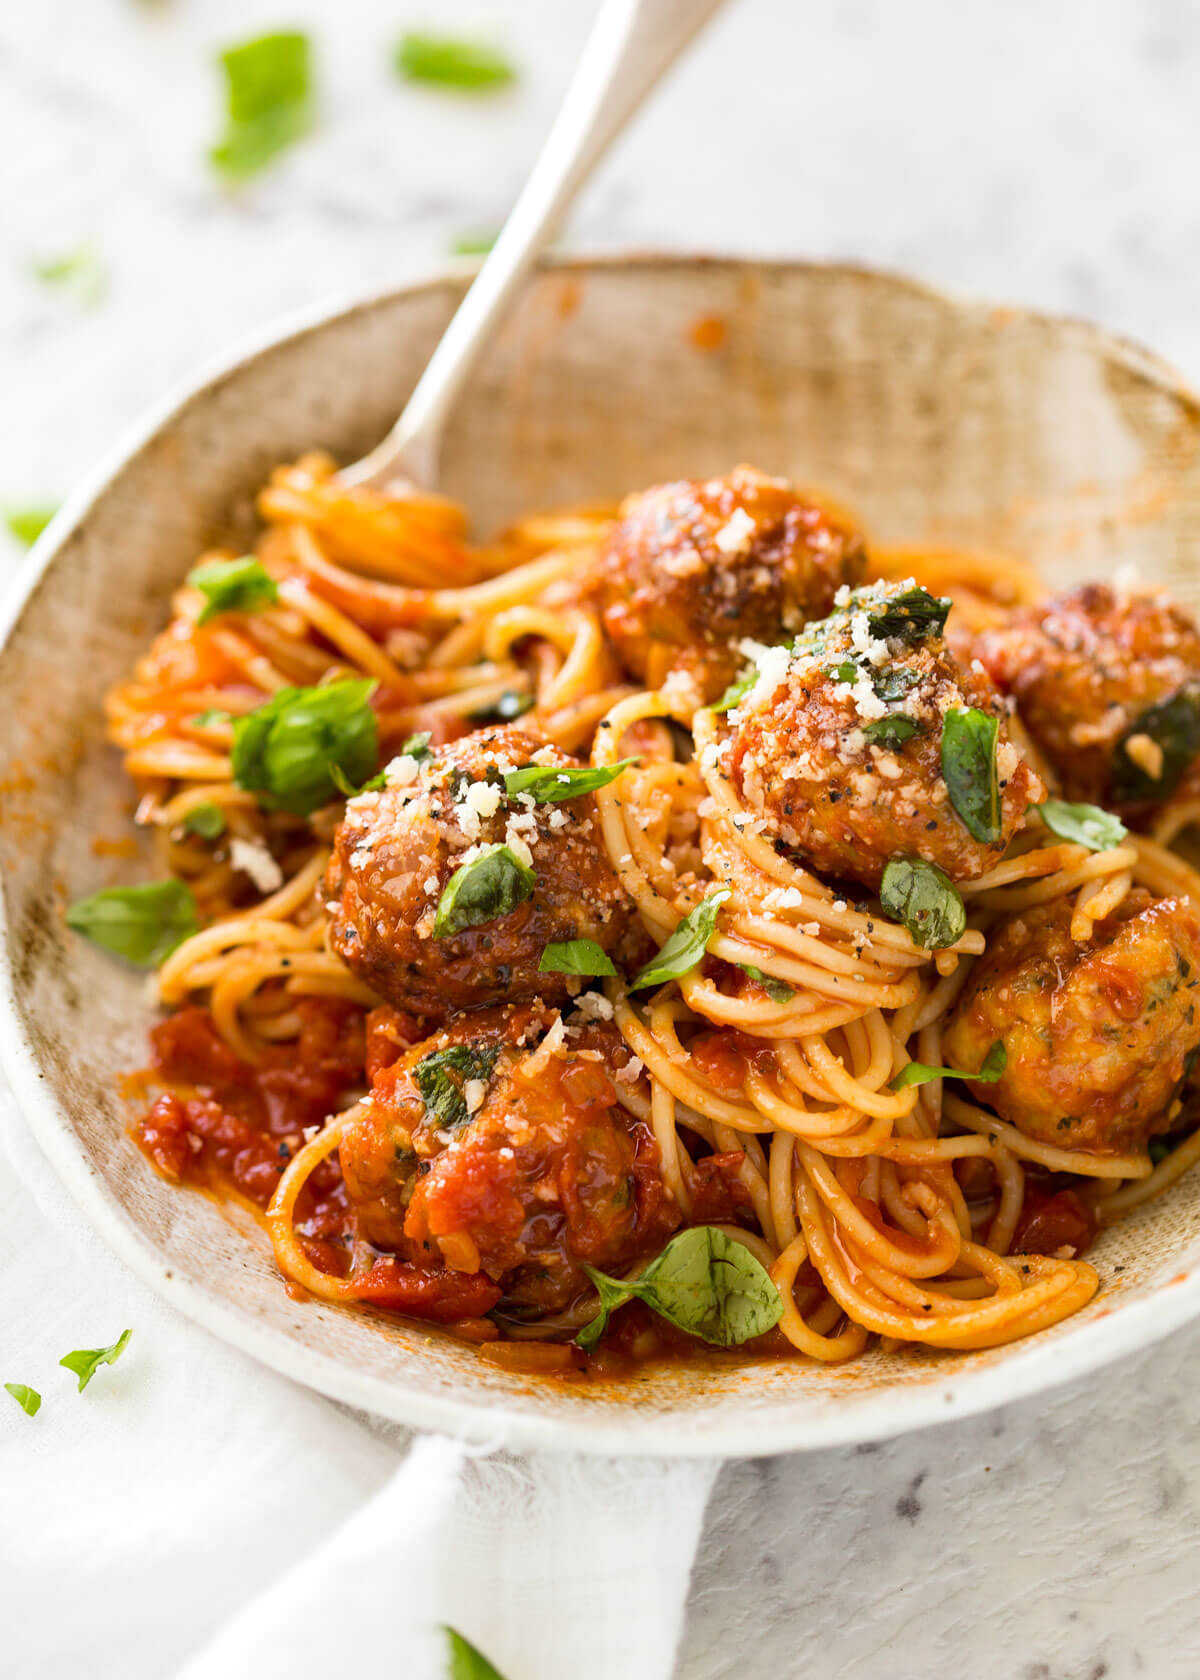 Baked Chicken Meatballs and Spaghetti | RecipeTin Eats